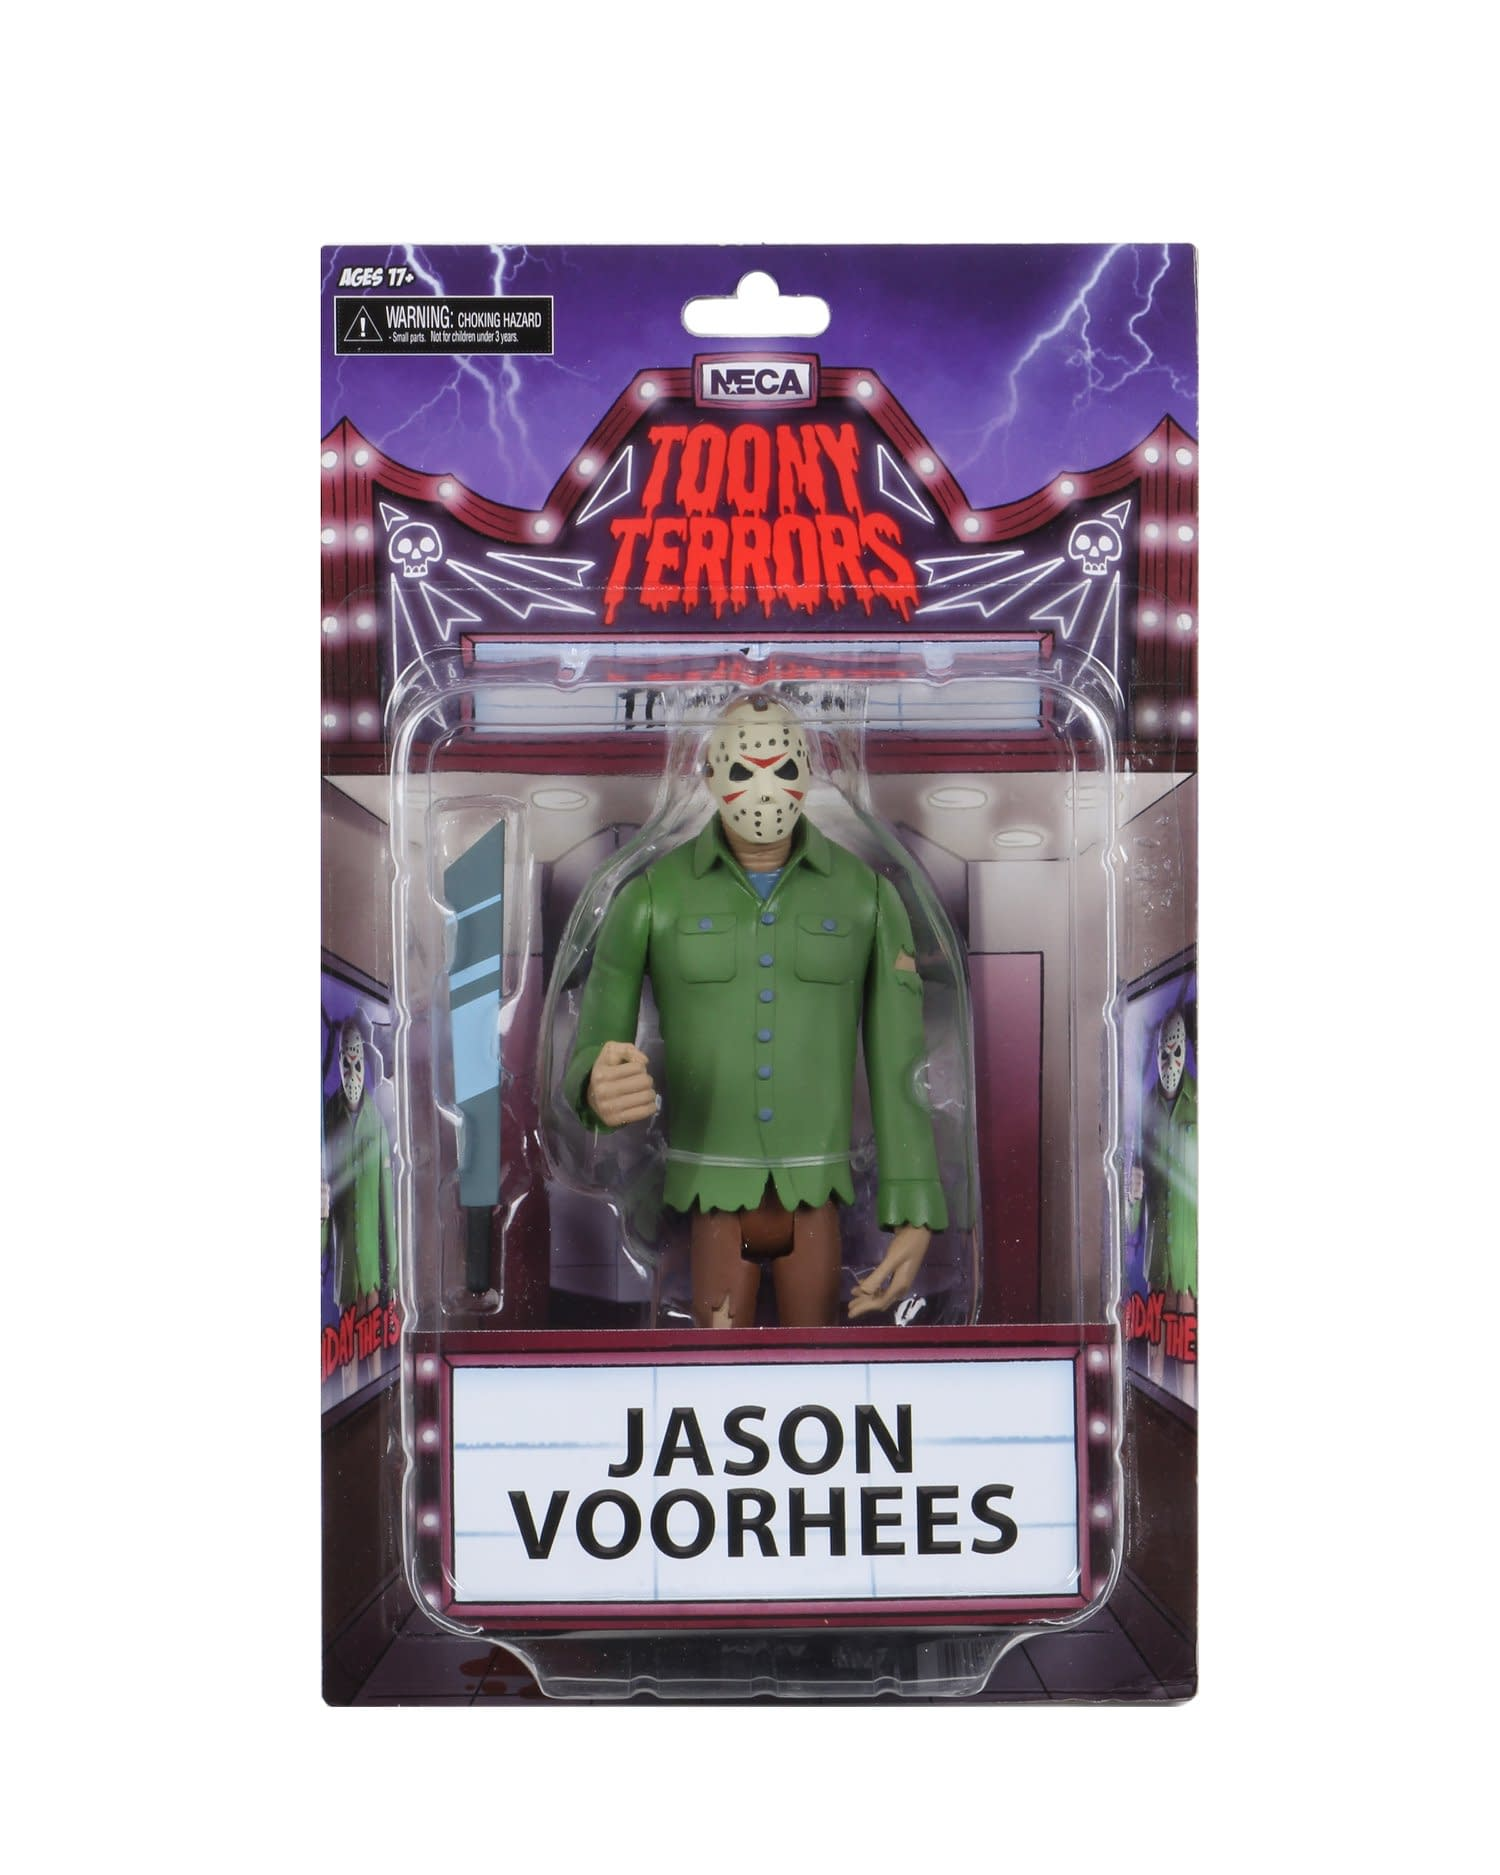 NECA Reveals Packaging for Toony Terrors Series 1